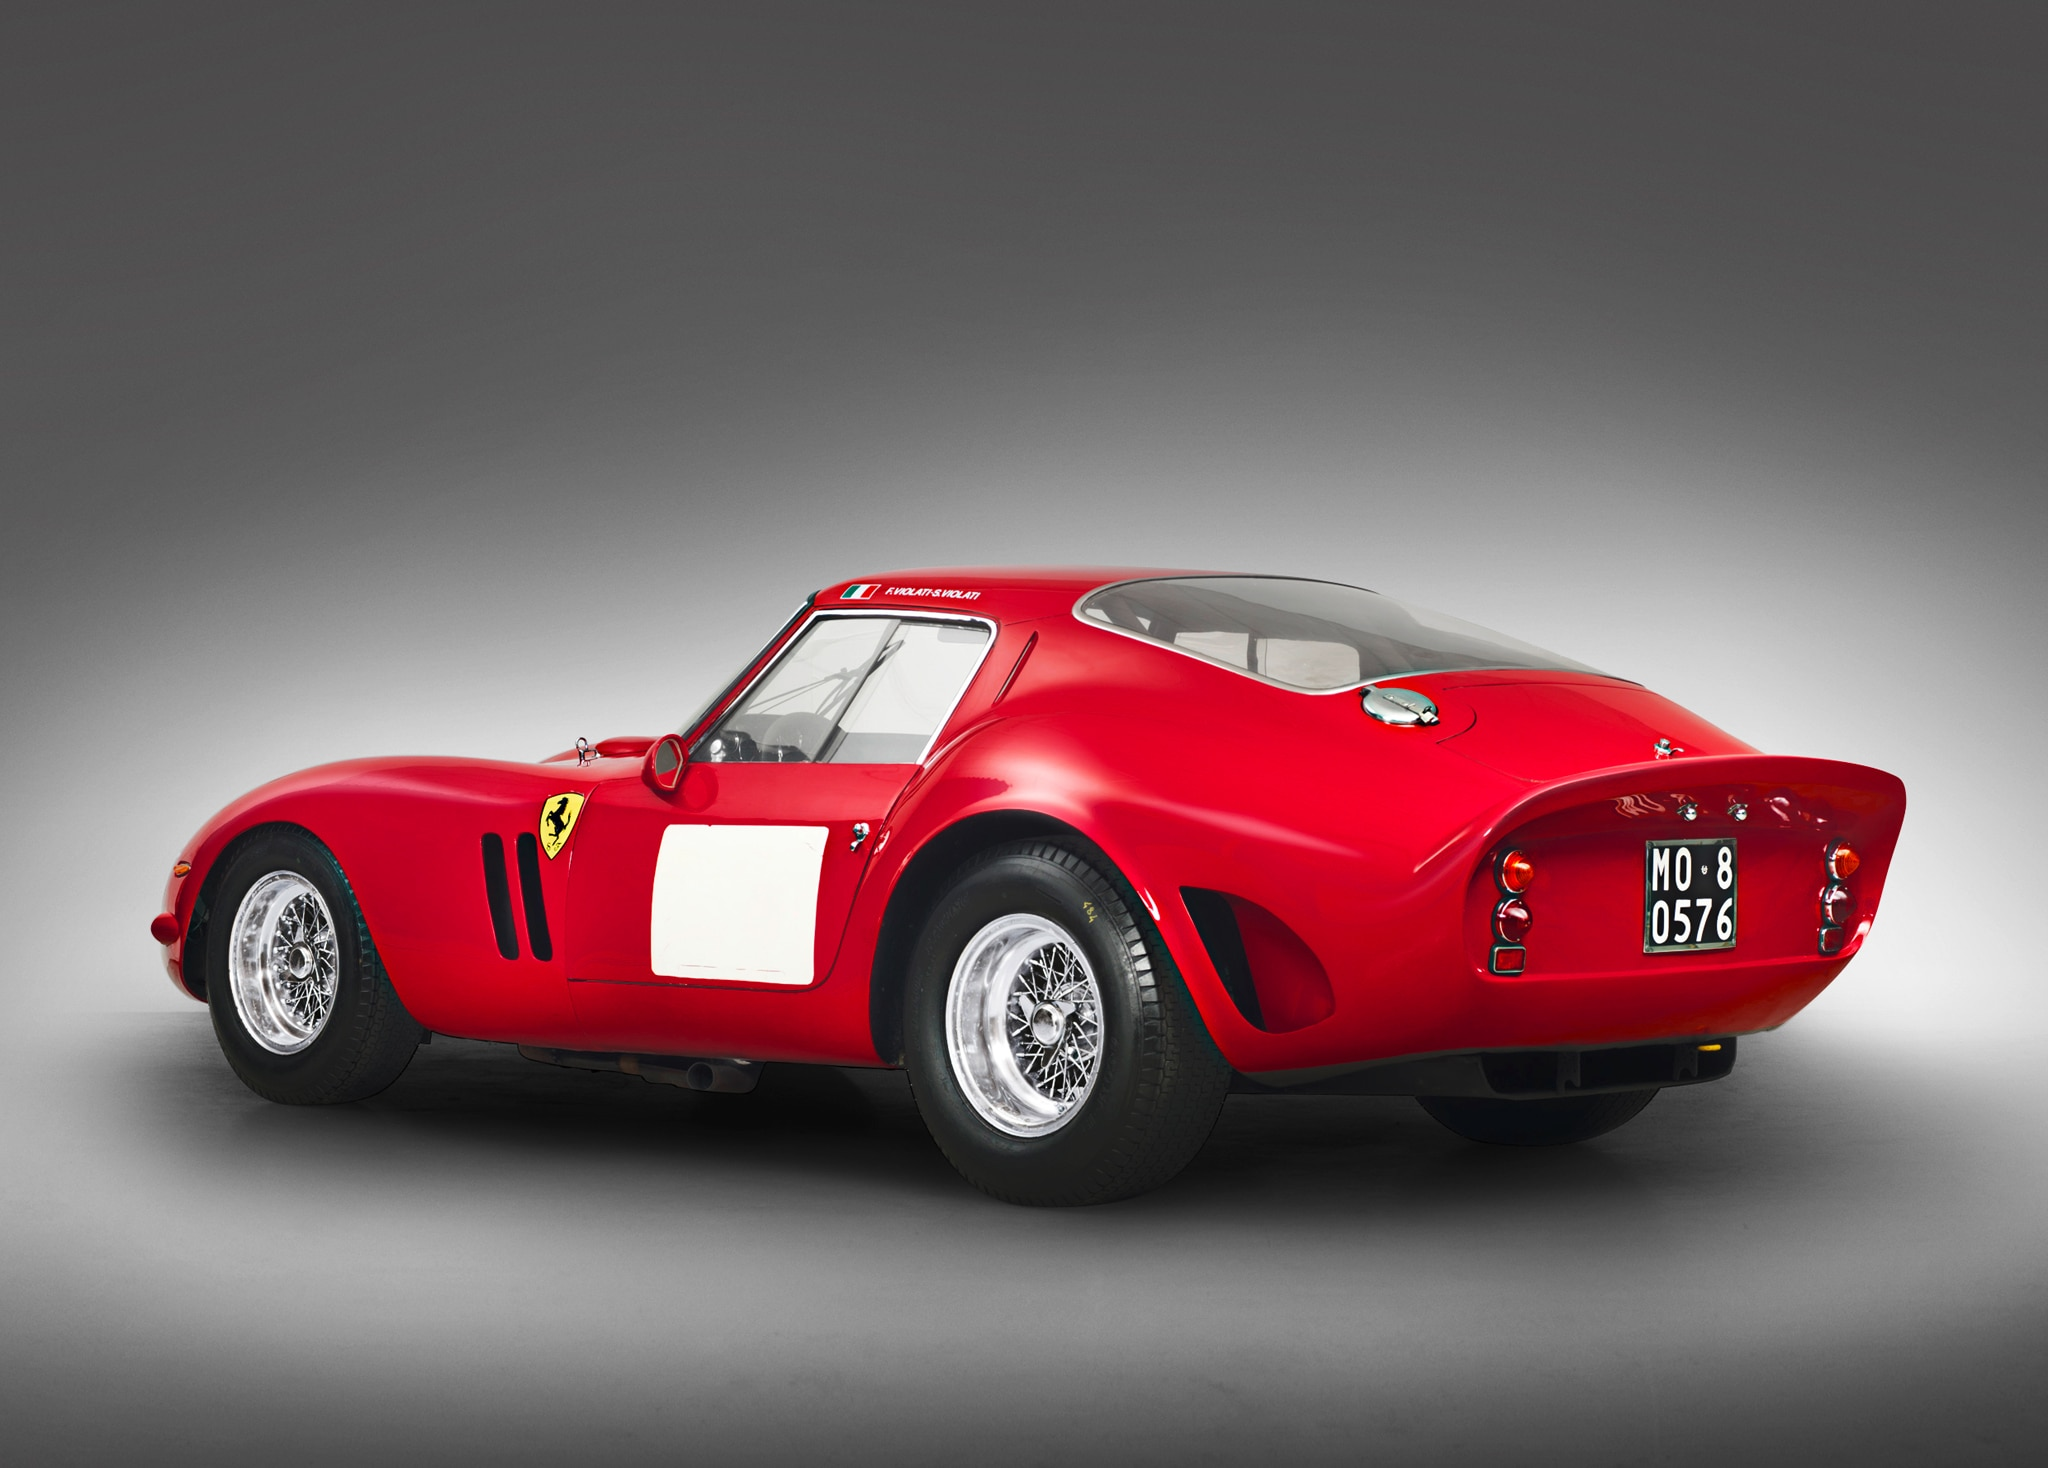 1962 ferrari 250 gto becomes most expensive car ever sold at auction